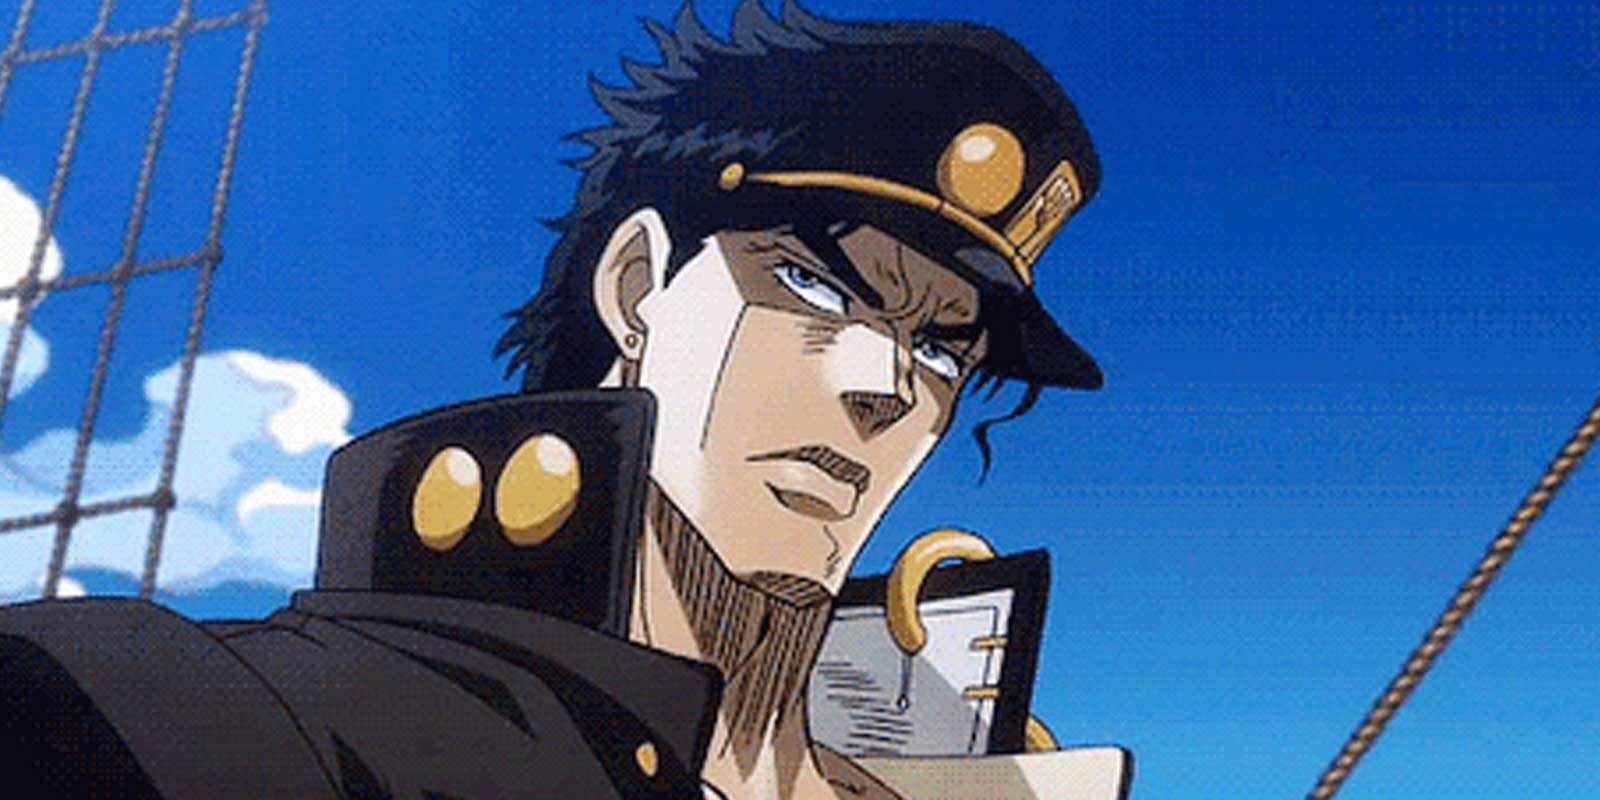 Do You Know About Jotaro's Hat, All You Need to Know About It